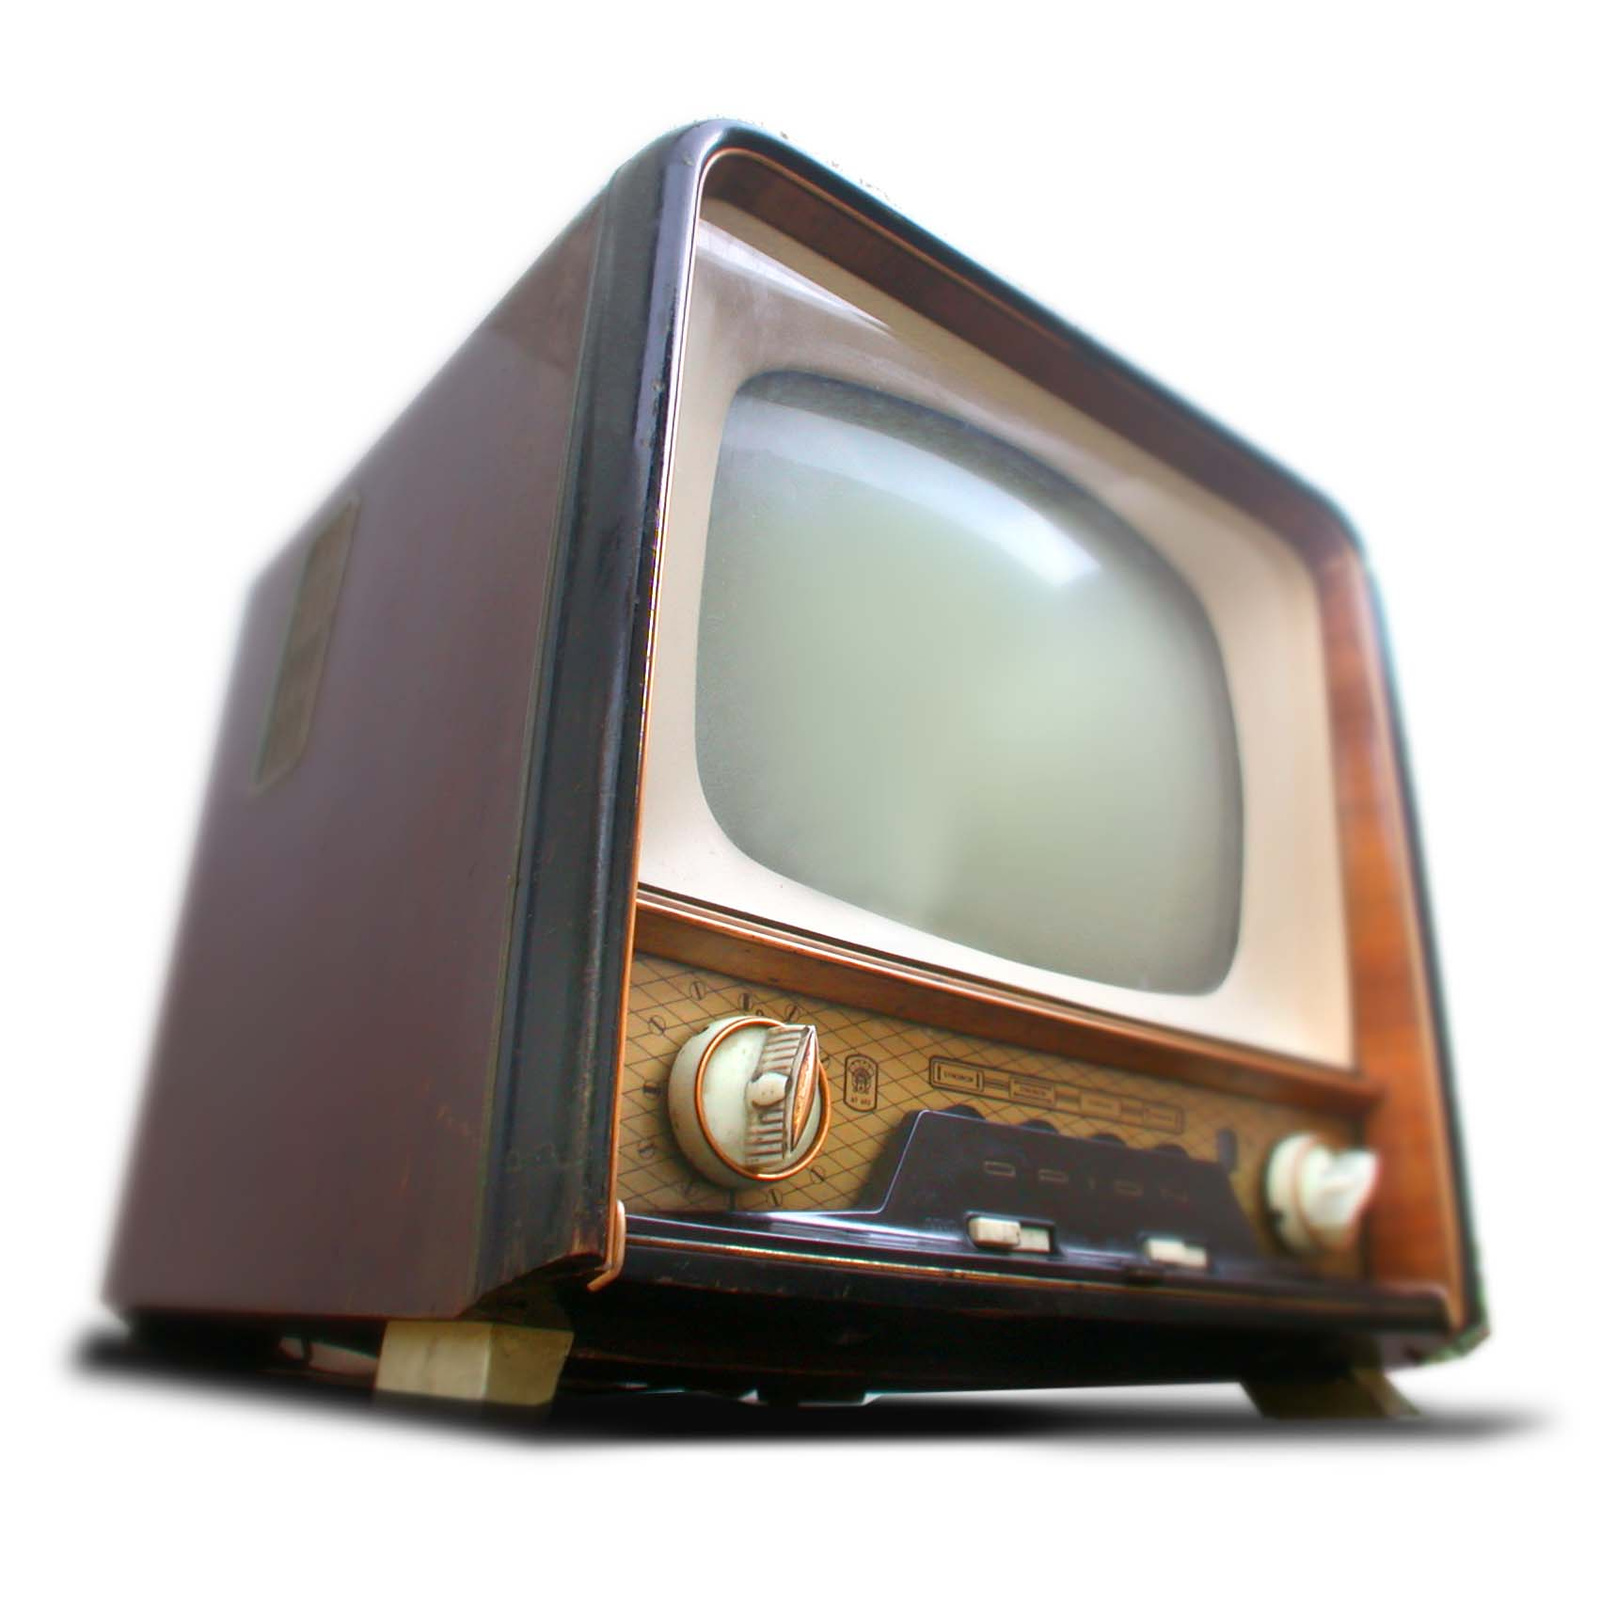 ORION-TV 1958